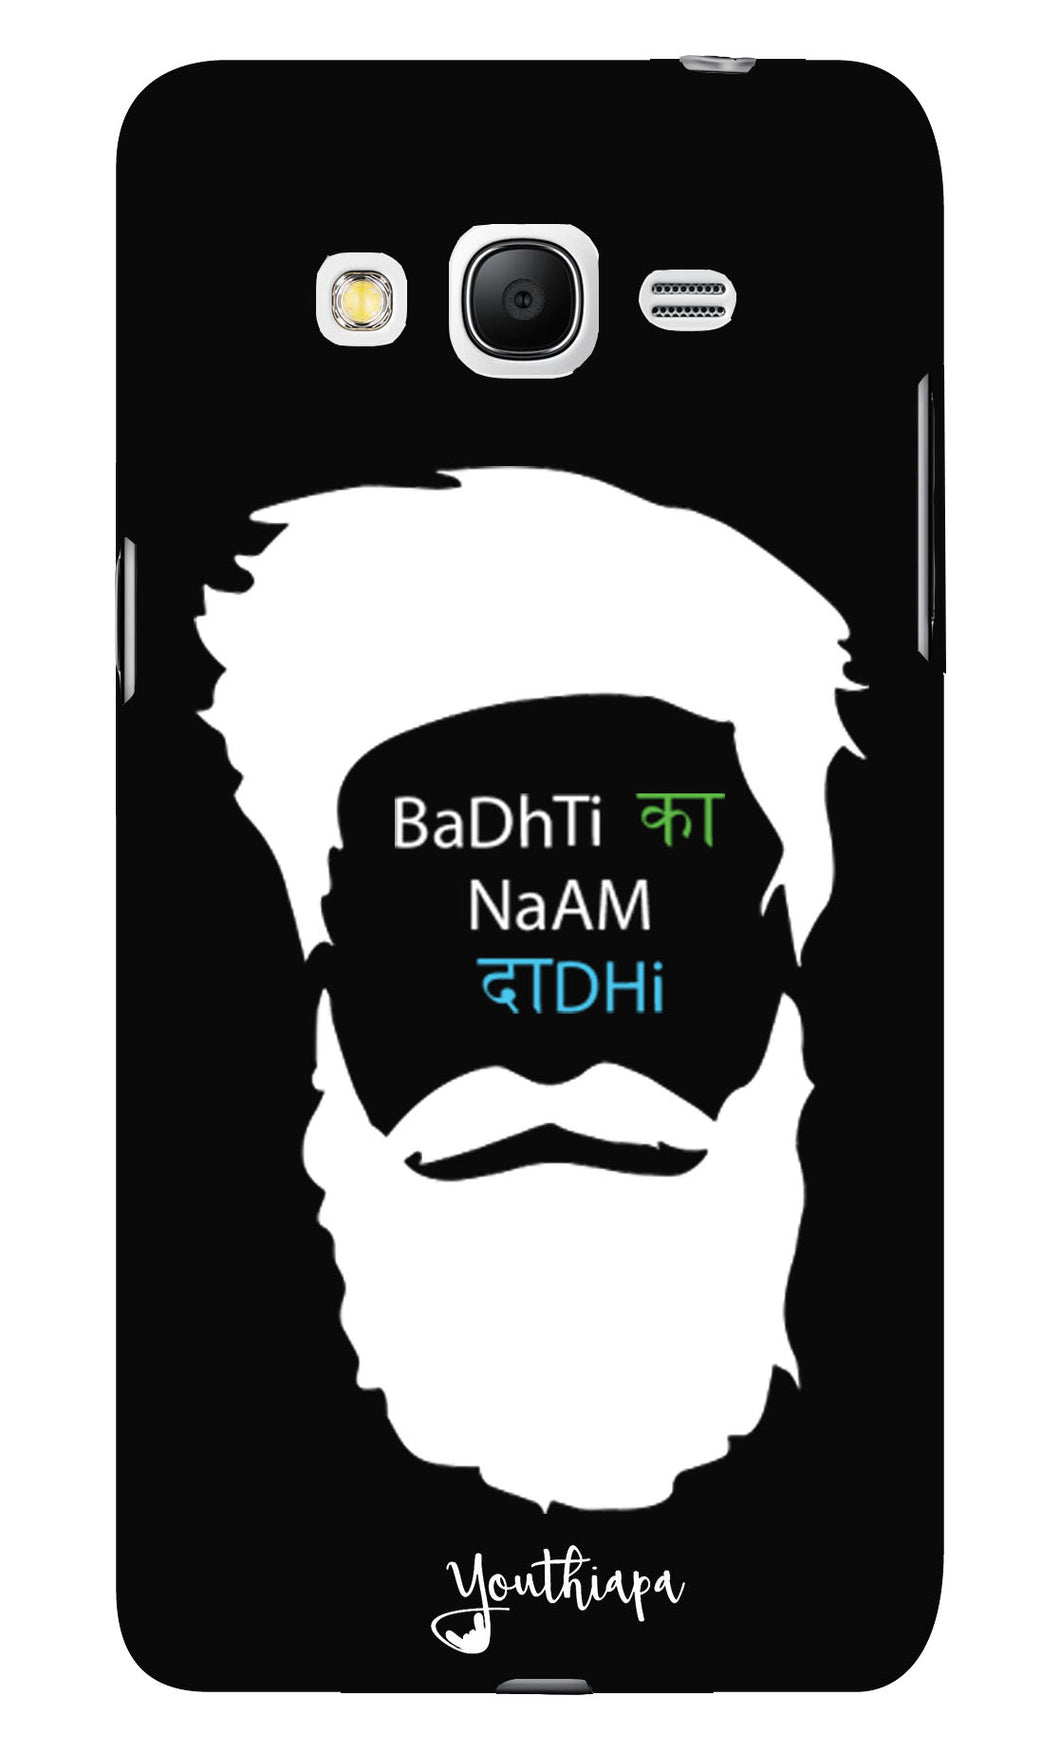 The Beard Edition for SAMSUNG GALAXY GRAND PRIME